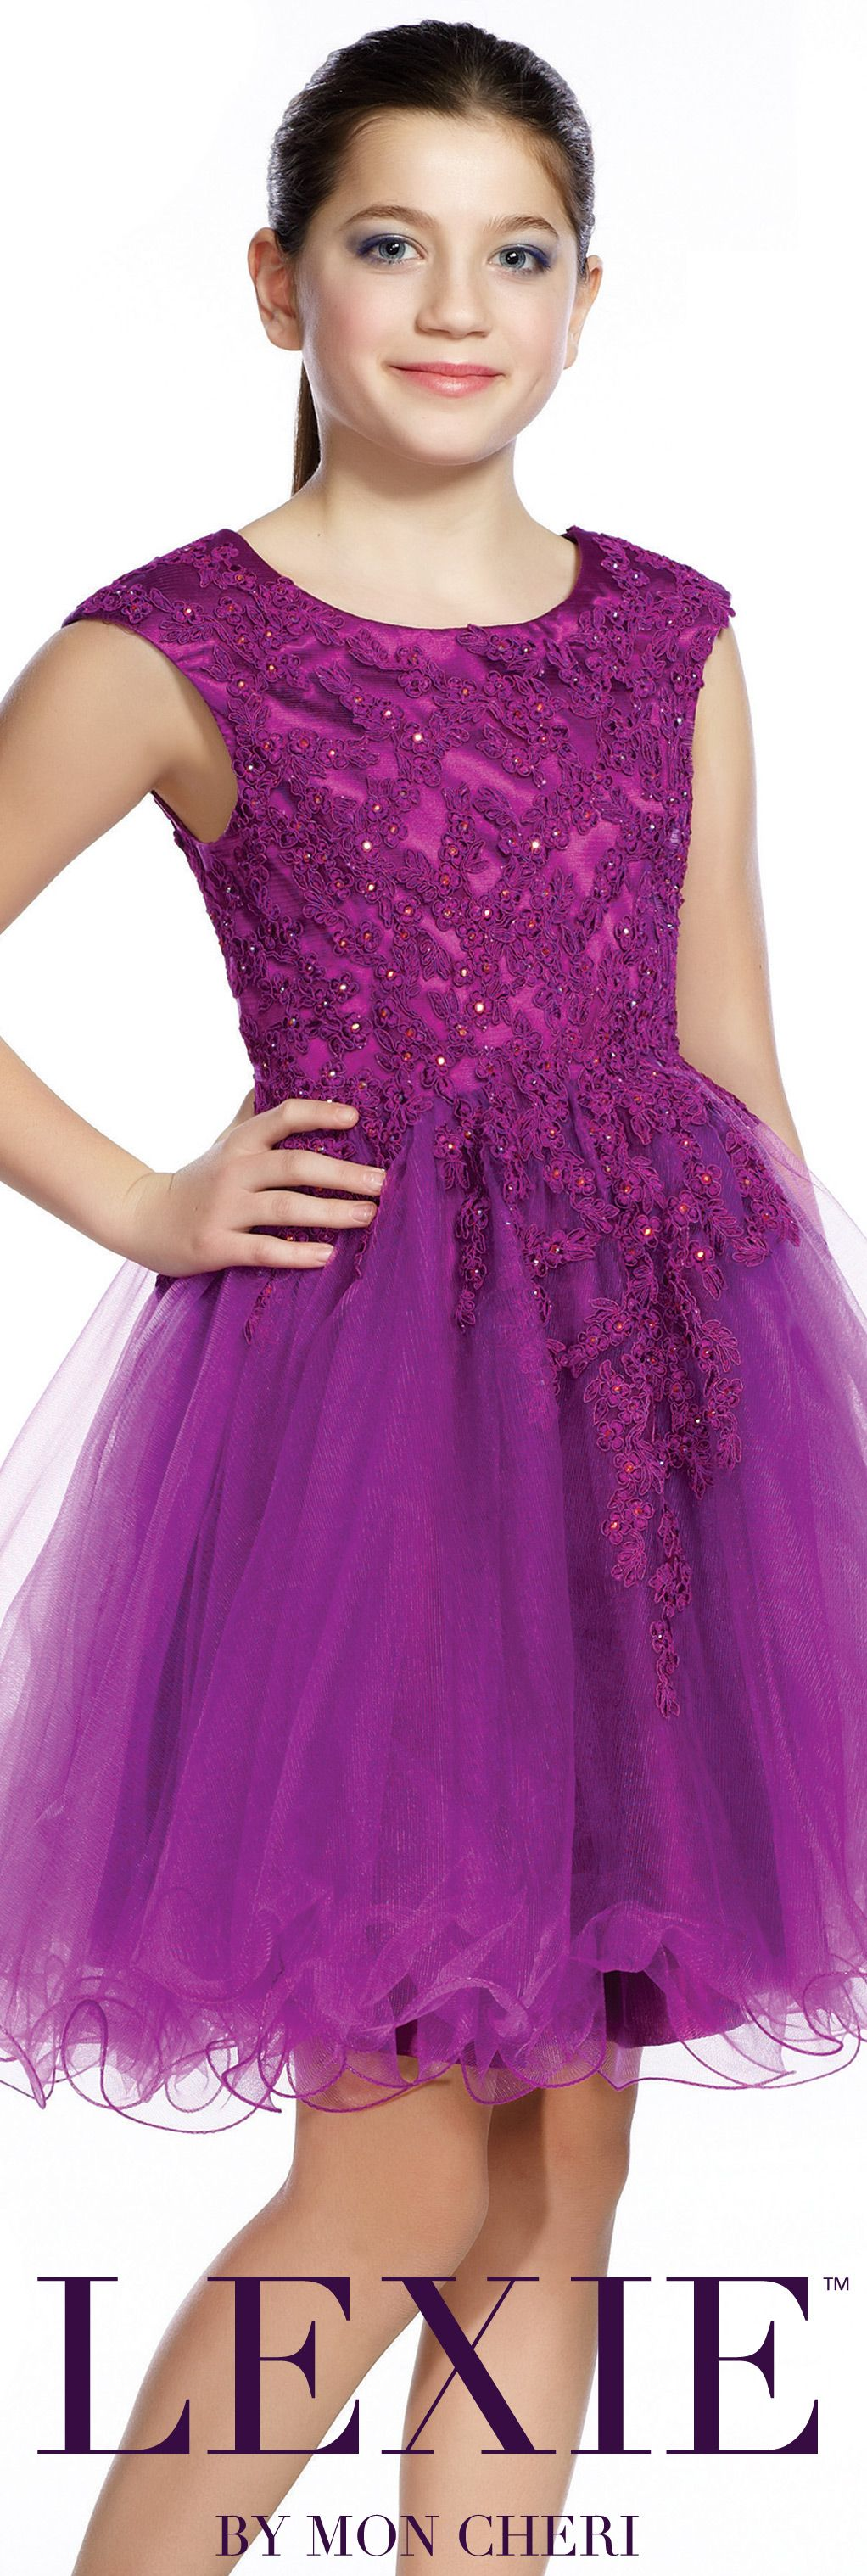 Lexie by mon cheri tween formal dress style no for How much are mon cheri wedding dresses